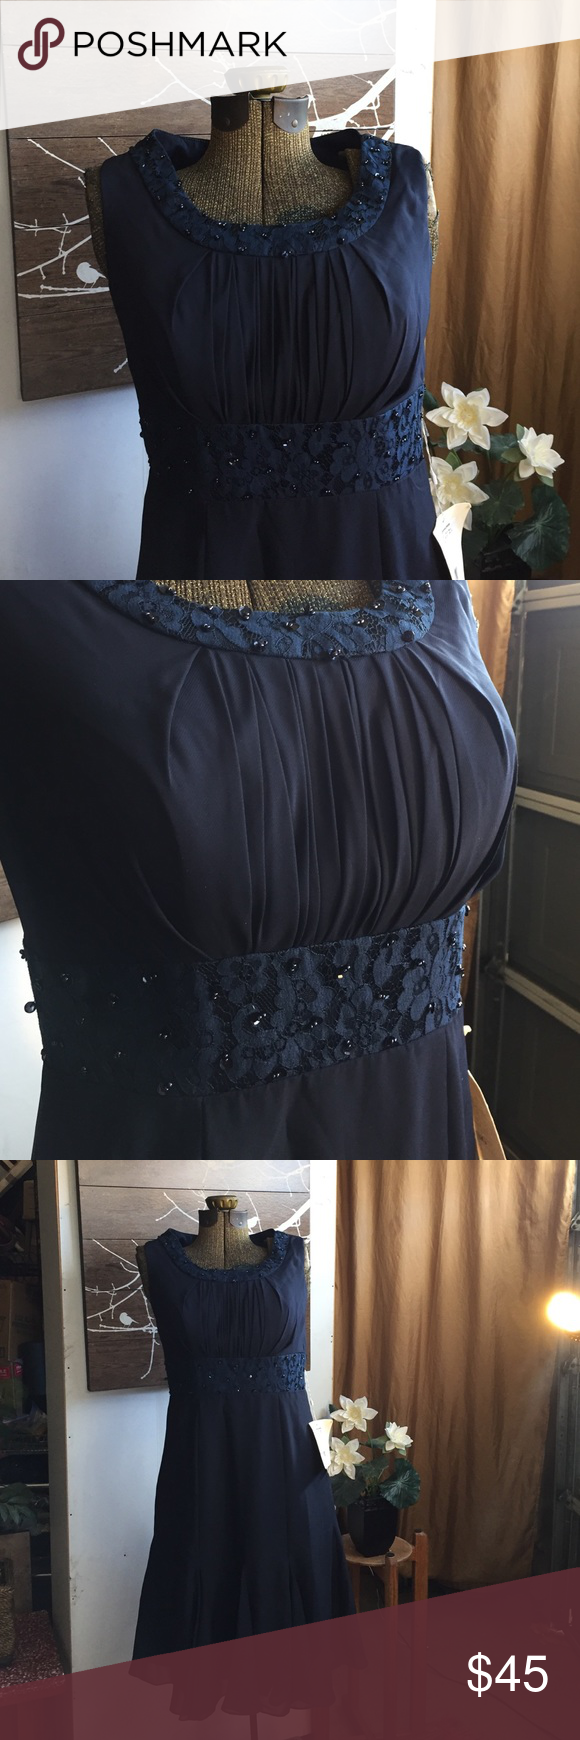 New with tags boutique navy blue and navy